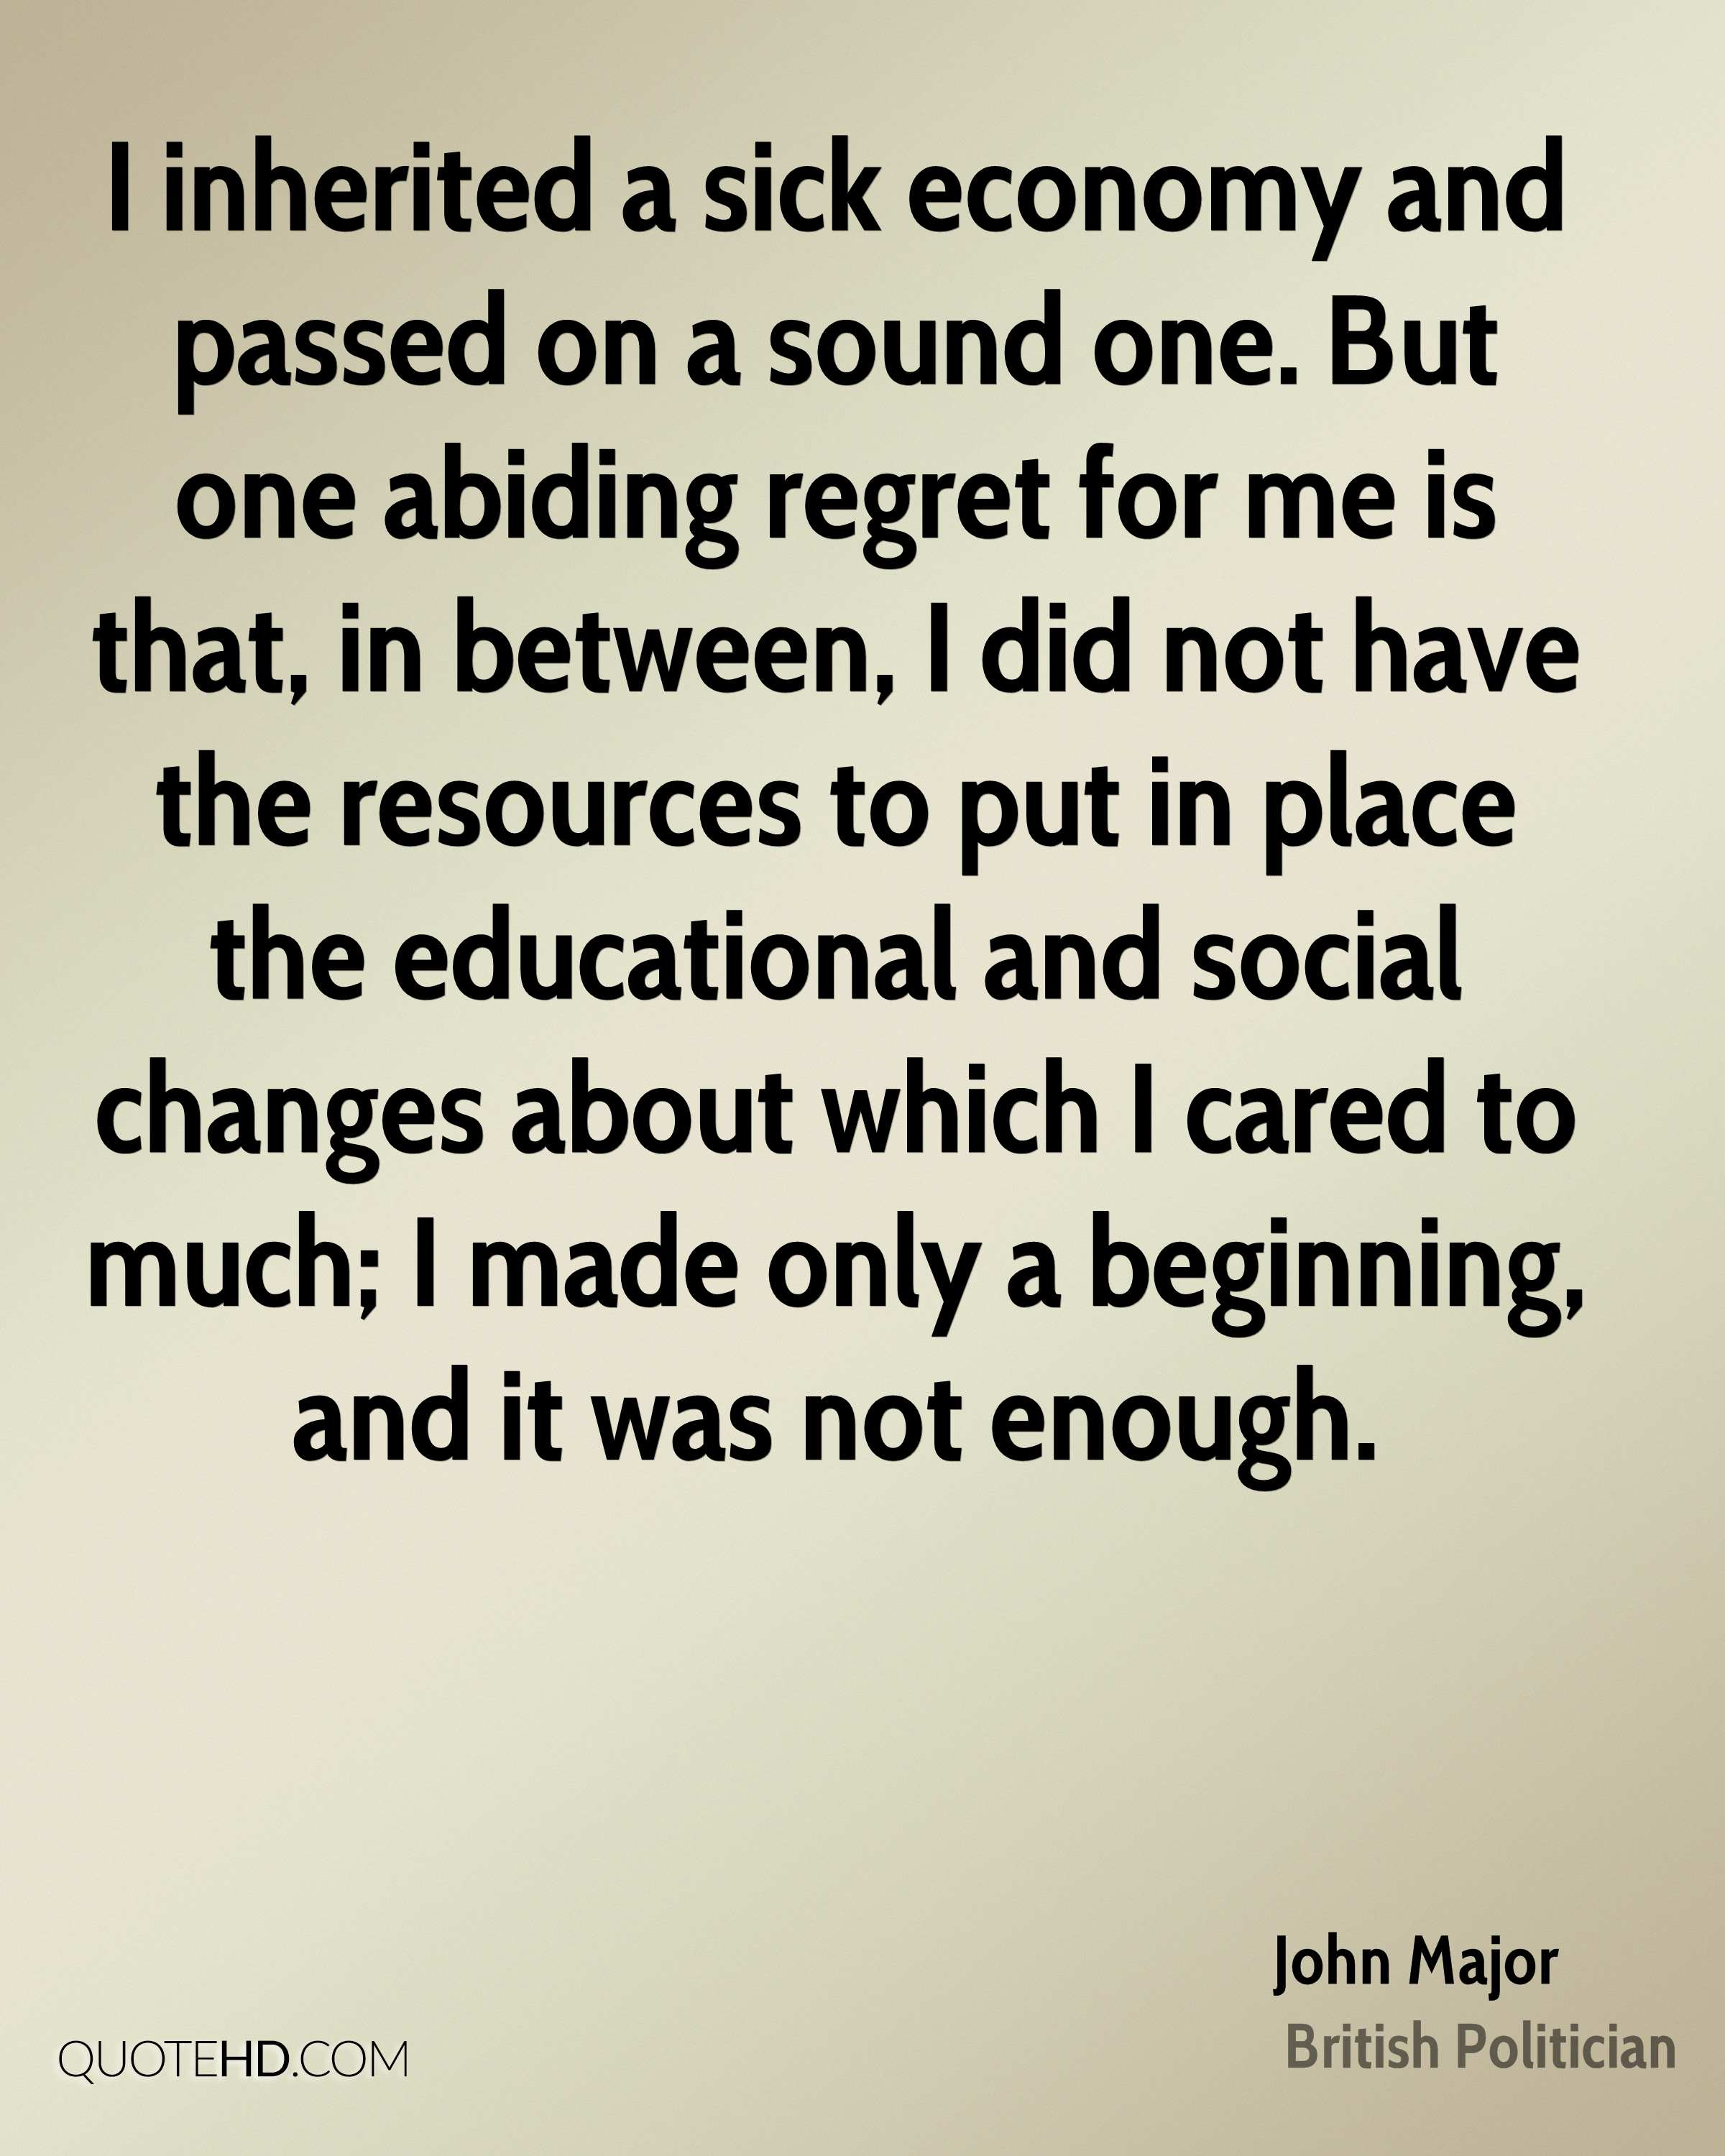 I inherited a sick economy and passed on a sound one. But one abiding regret for me is that, in between, I did not have the resources to put in place the educational and social changes about which I cared to much; I made only a beginning, and it was not enough.